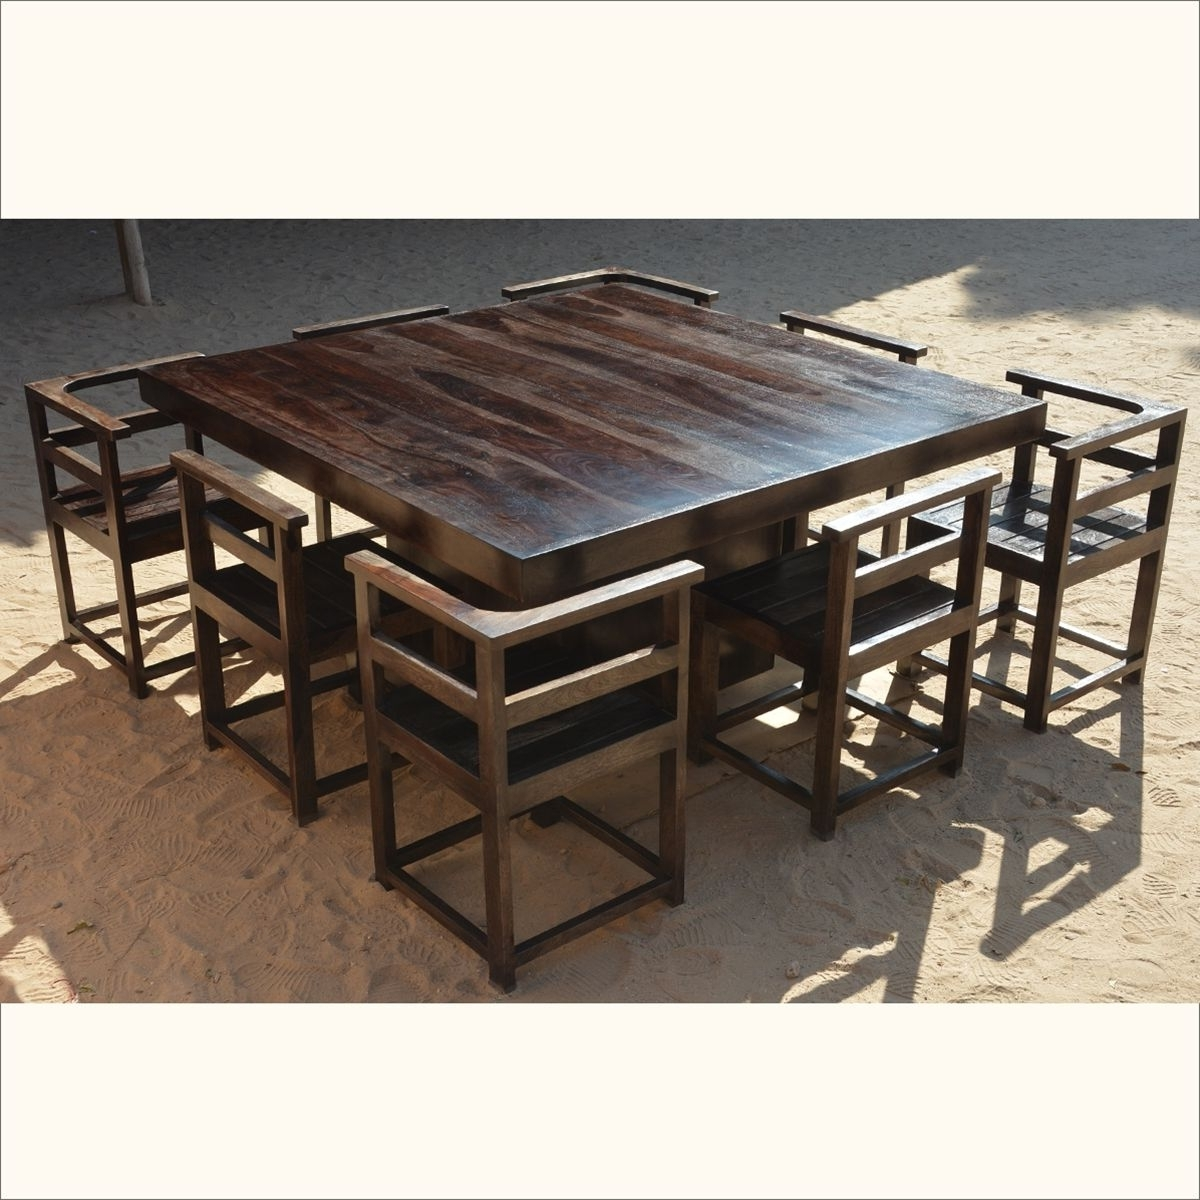 "Dining Tables For 8 with Most Up-to-Date Modern Rustic Solid Wood 64"" Square Pedestal Dining Table & 8 Chairs"